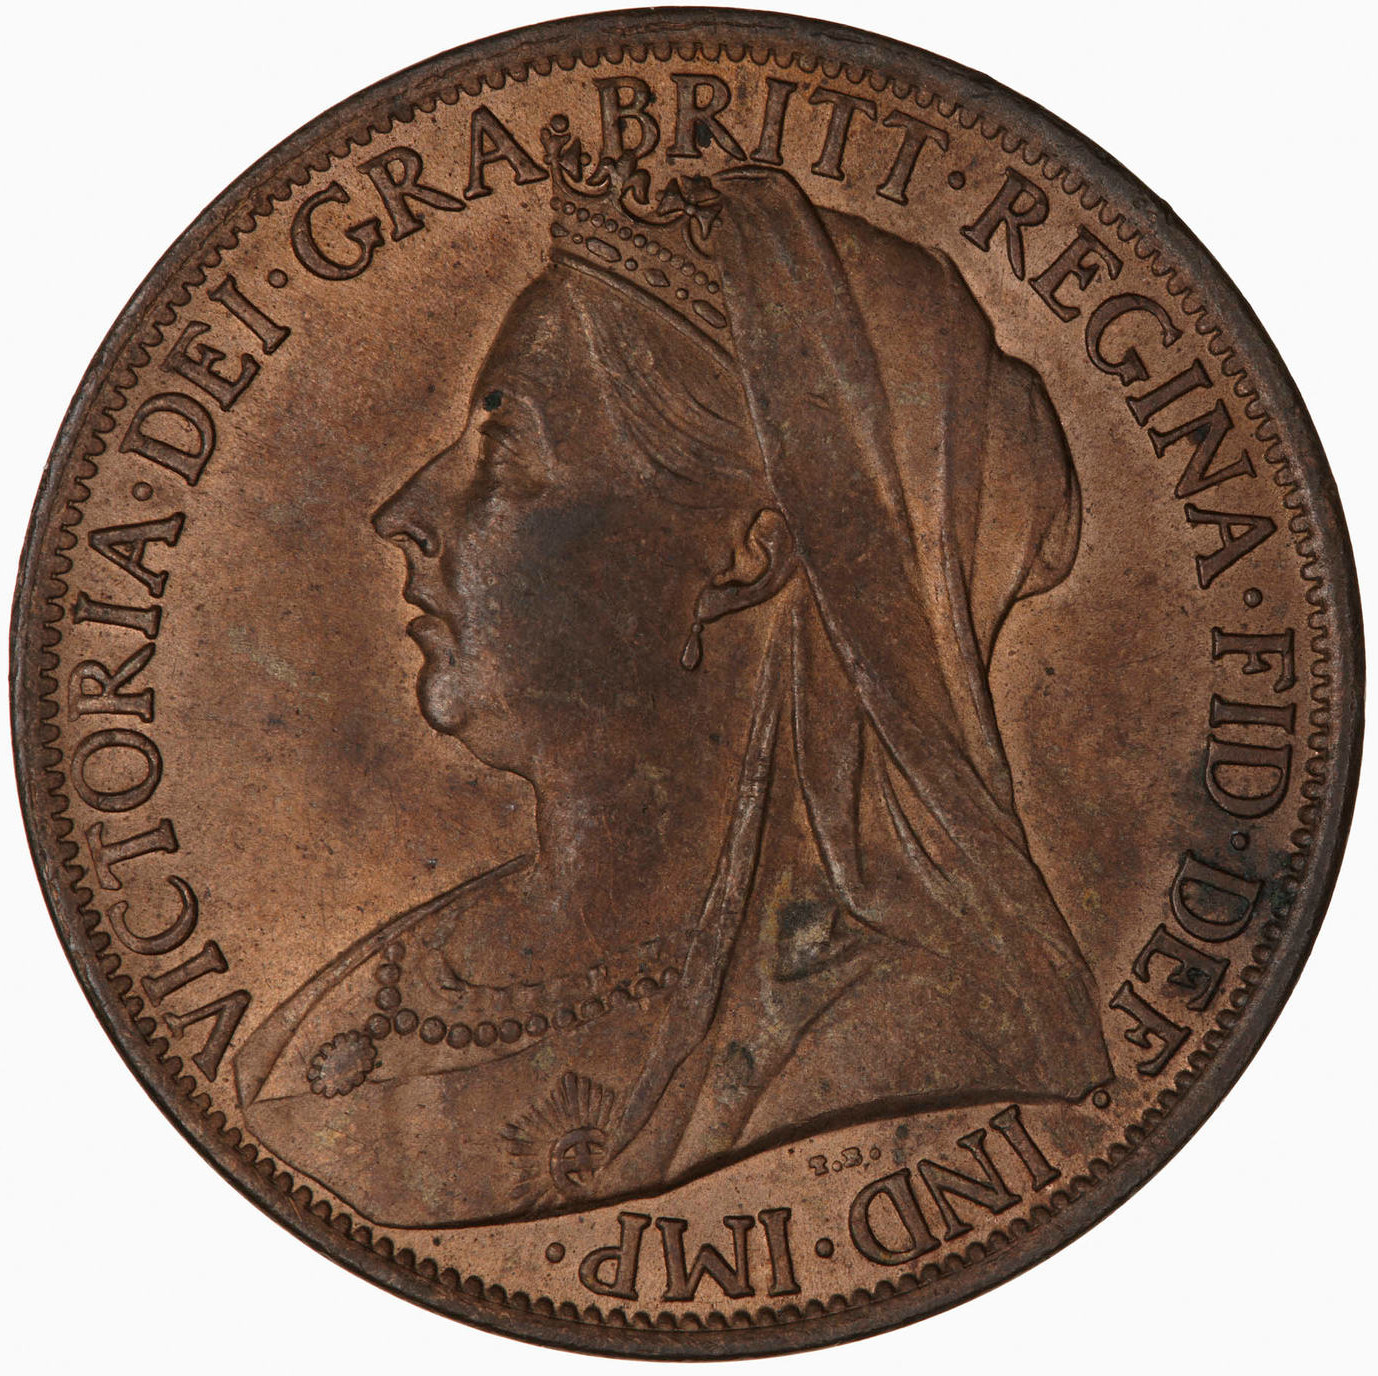 Penny 1899: Photo Coin - Penny, Queen Victoria, Great Britain, 1899